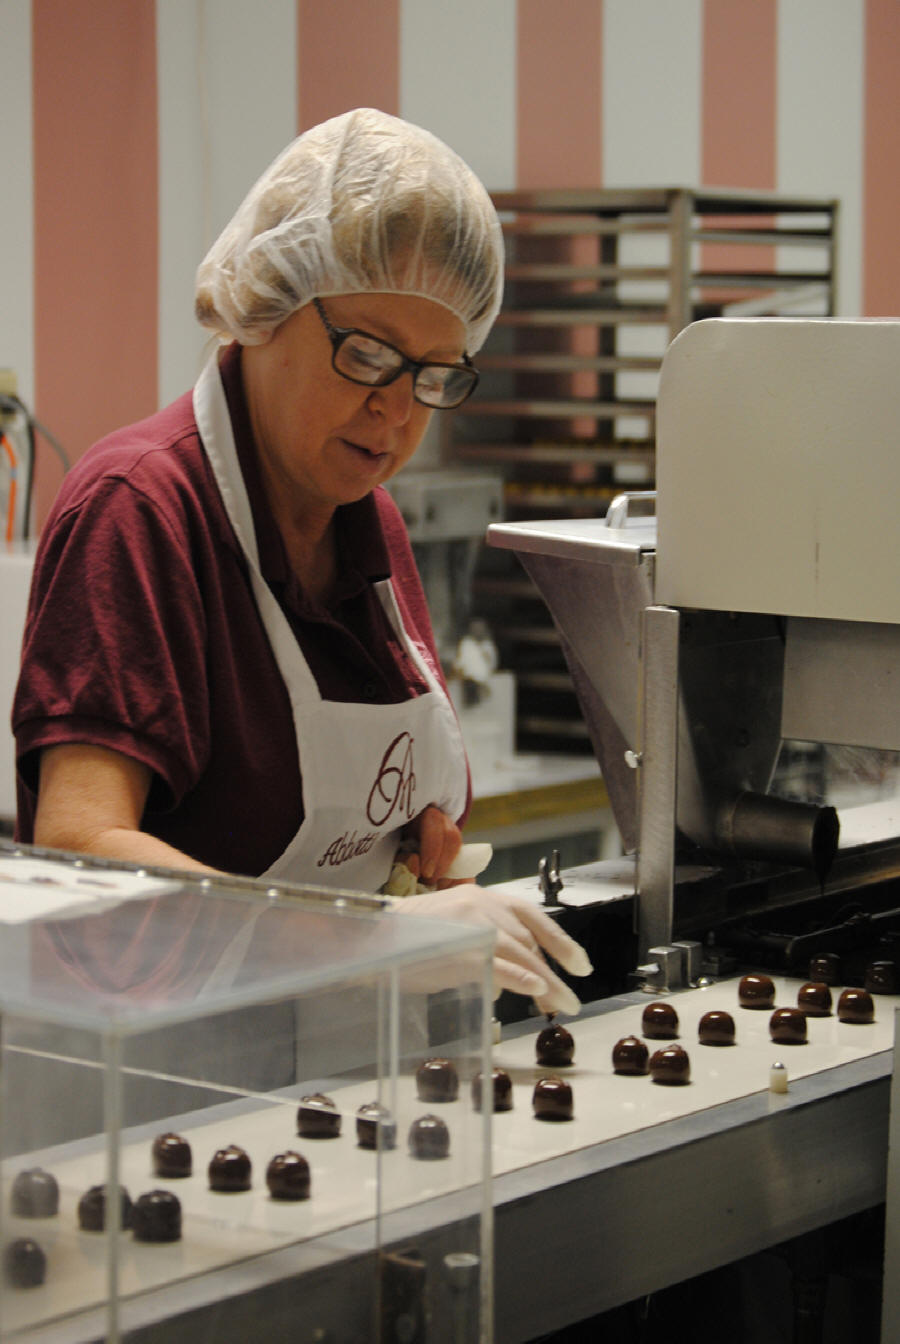 Chocolatier making candies at Abbots Candy Shop on Indiana's Chocolate Trail